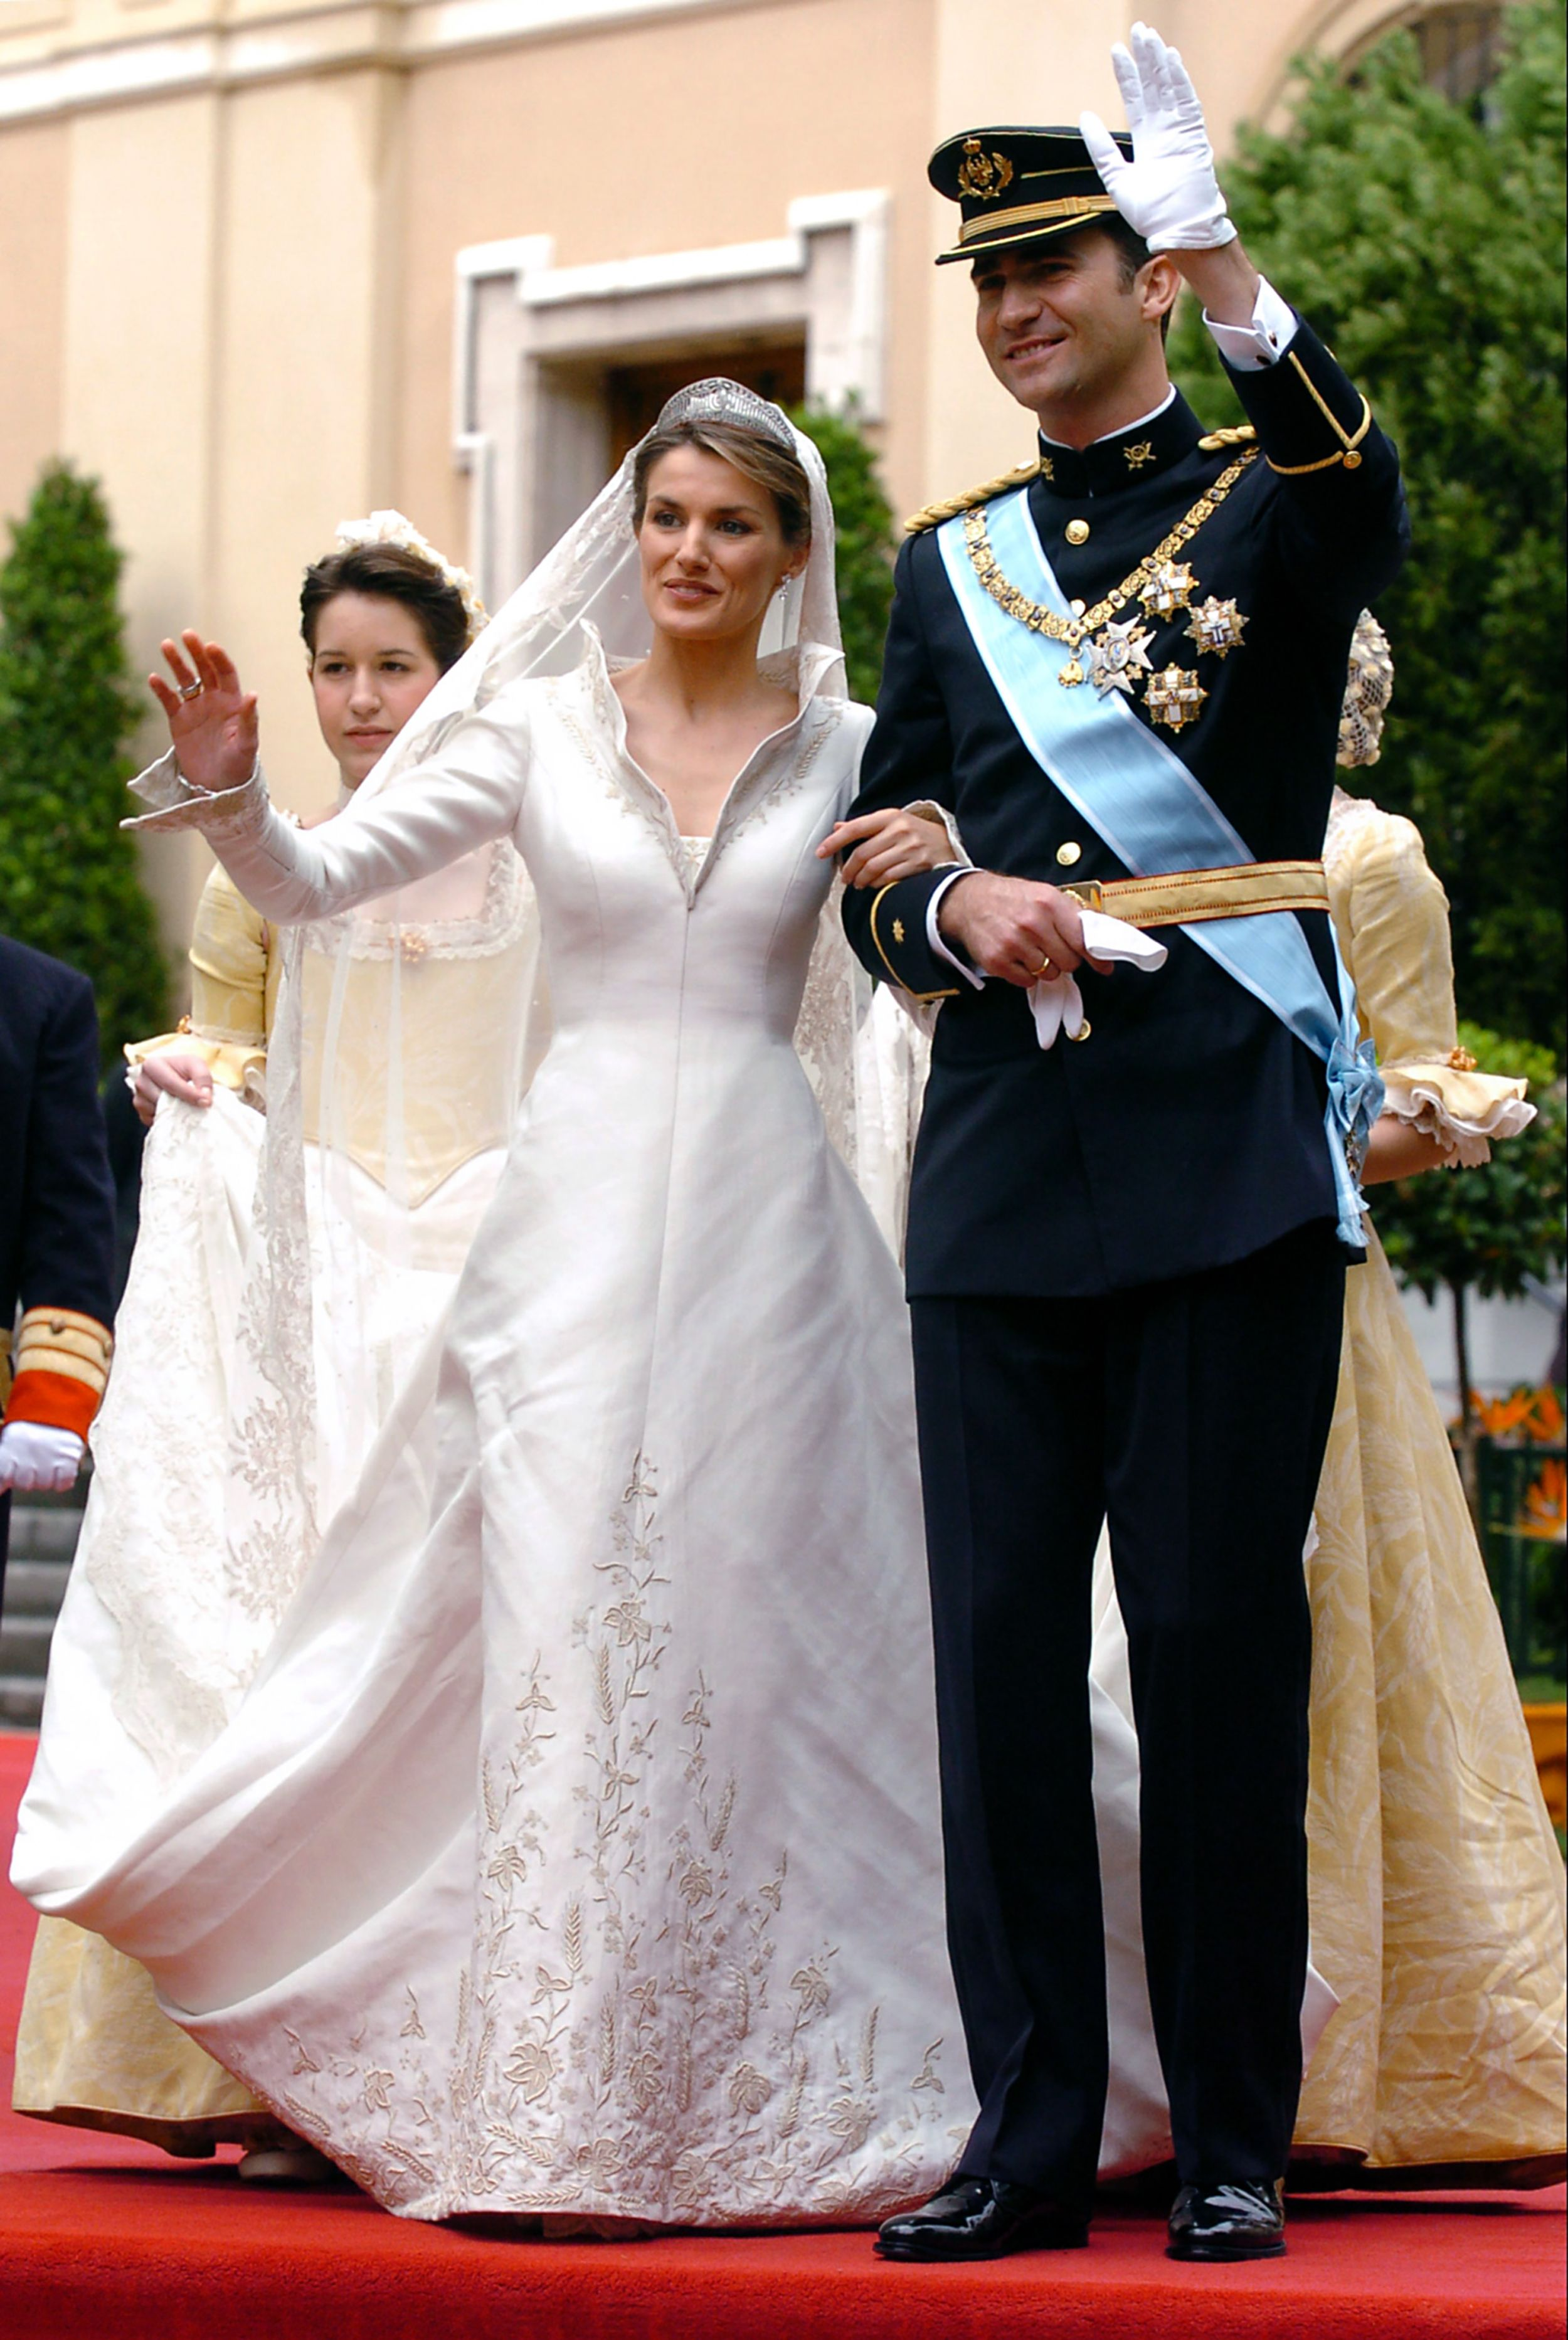 The Best Royal Wedding Dresses Of Last 70 Years Gowns: Swedish Royal Wedding Dresses At Websimilar.org